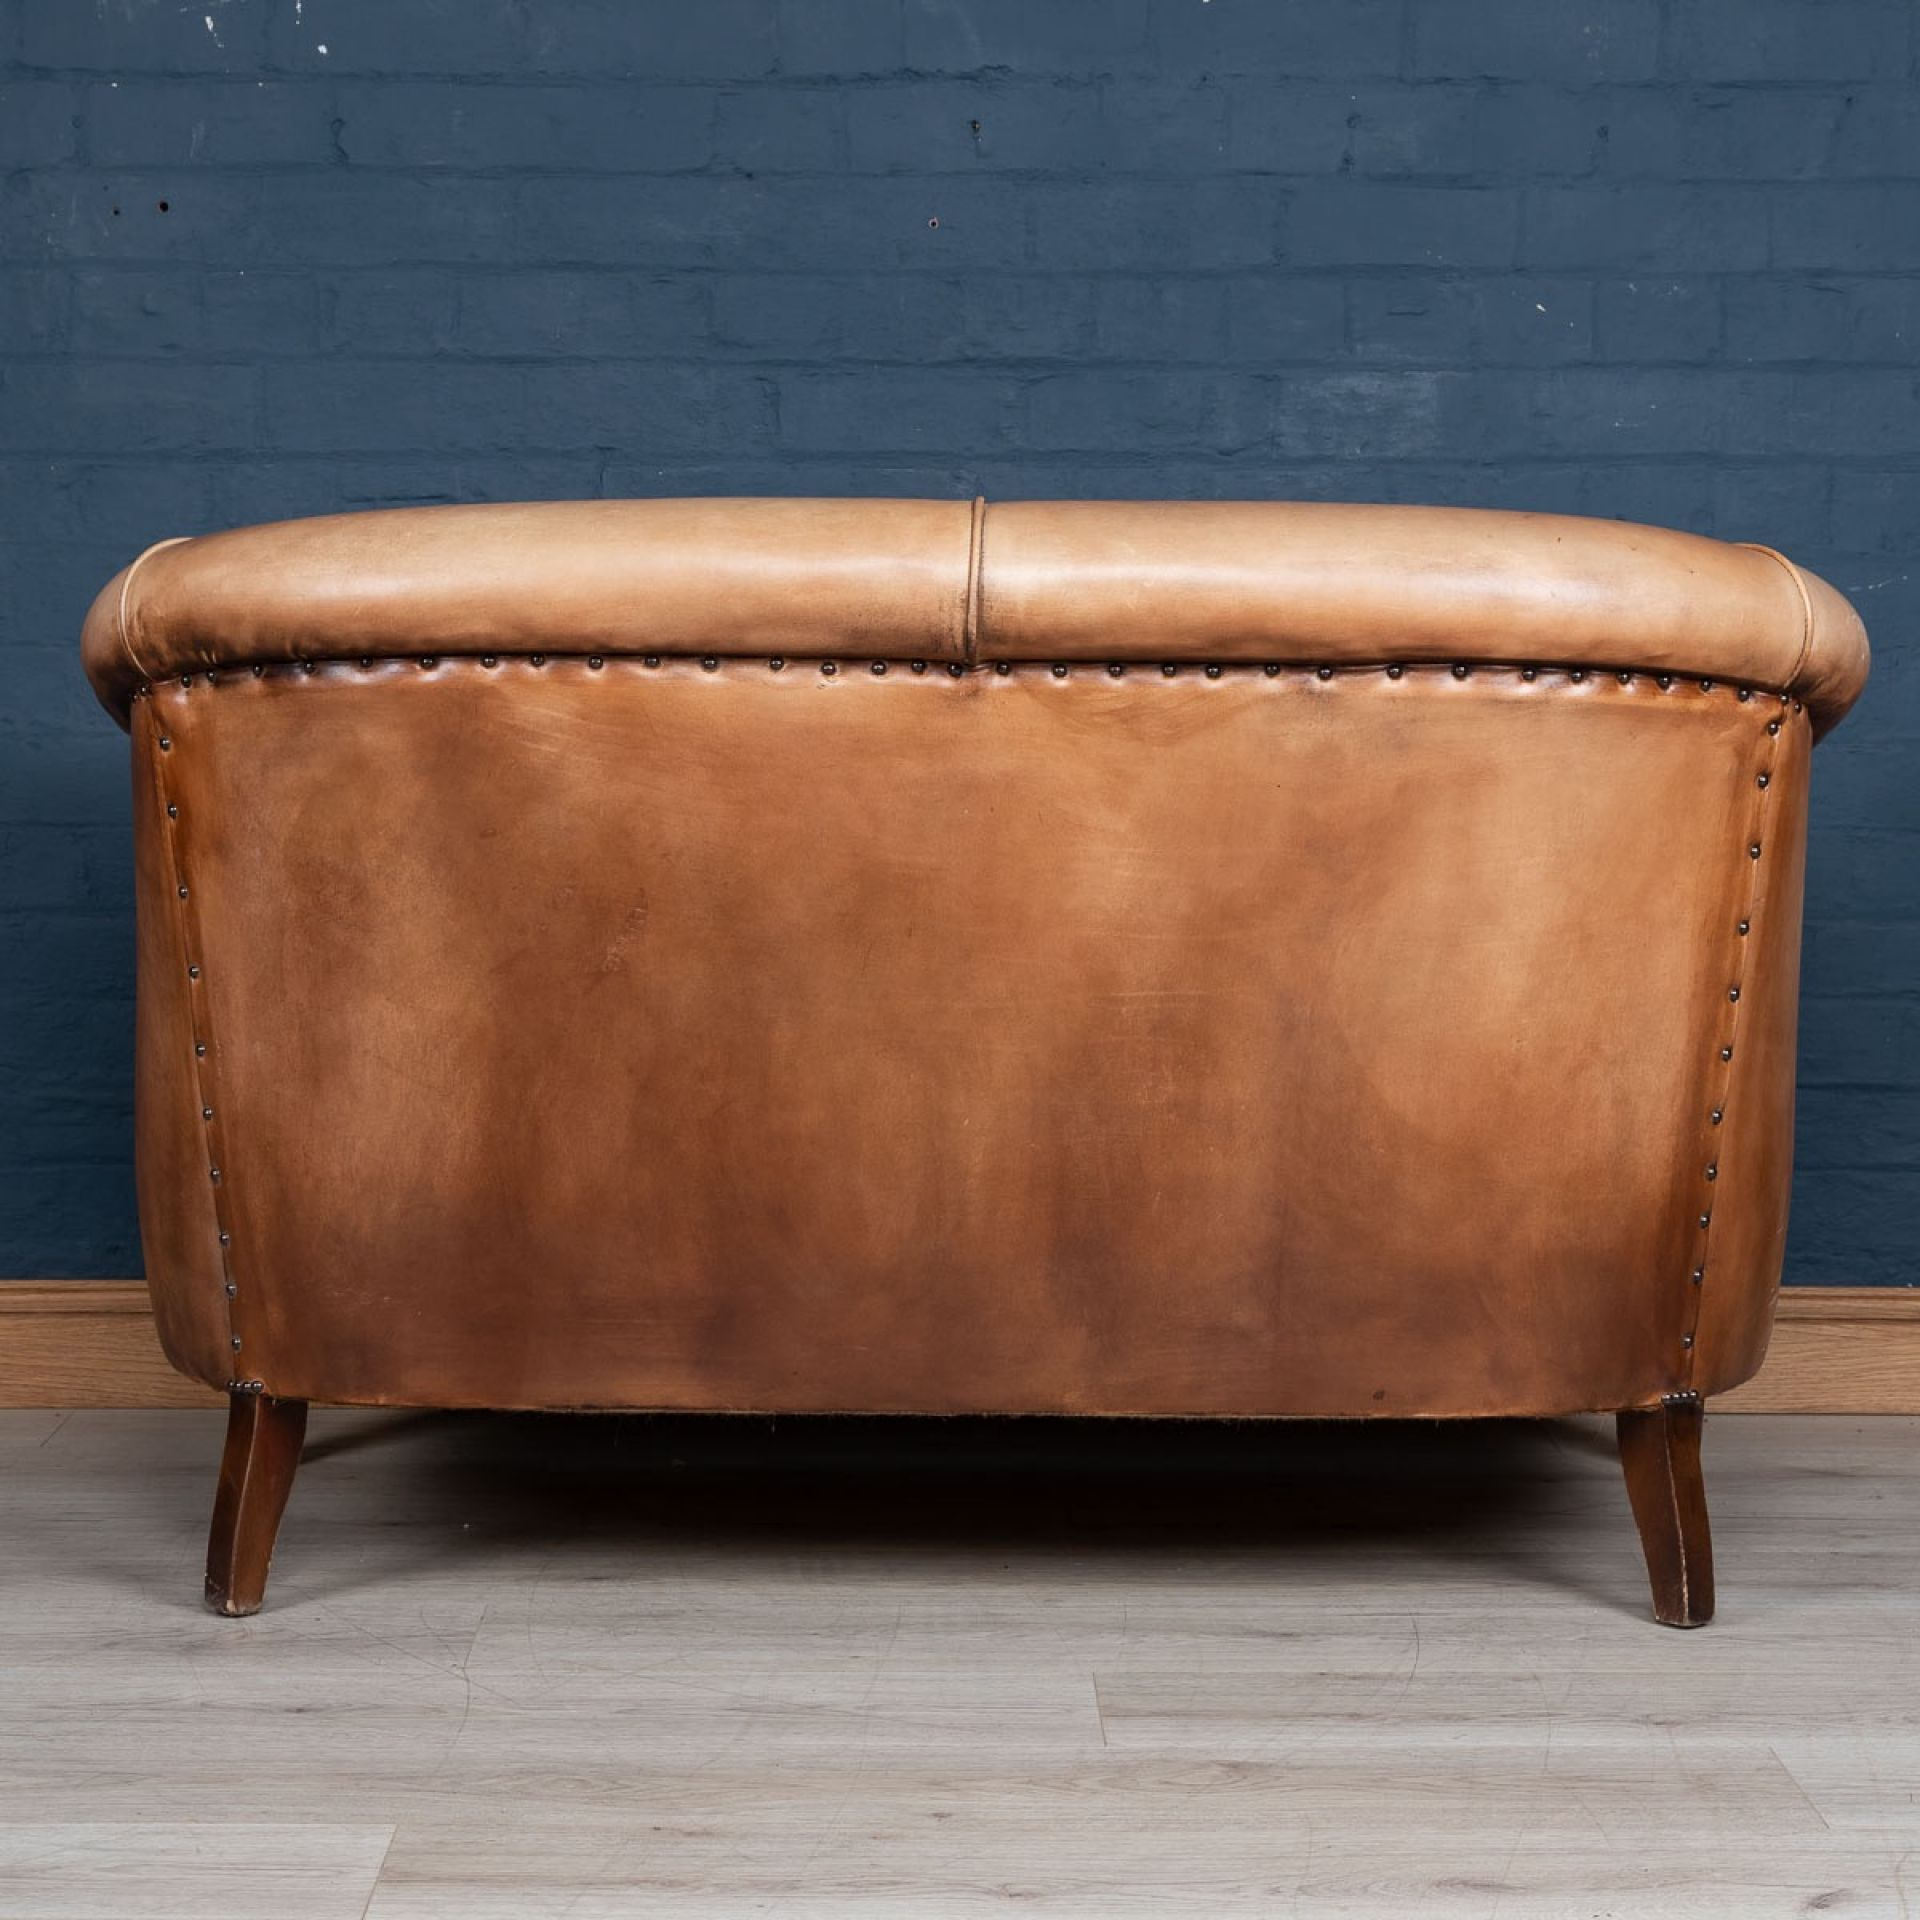 LATE 20thC DUTCH TWO SEATER LEATHER SOFA c.1970